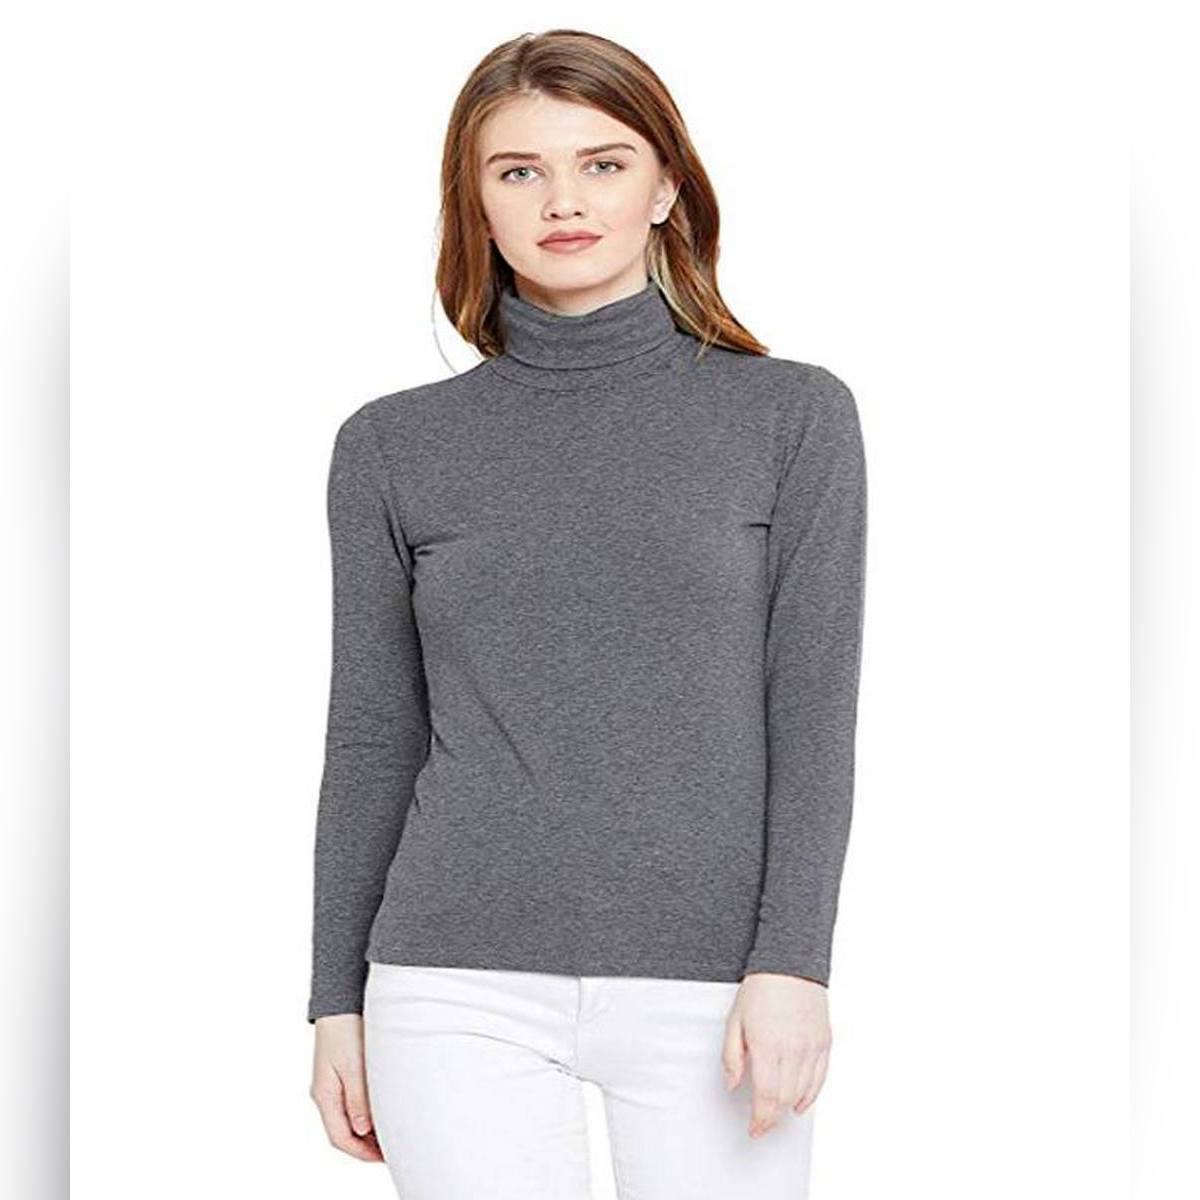 Pack of 1 – Winter Slim Fit High Neck for Women